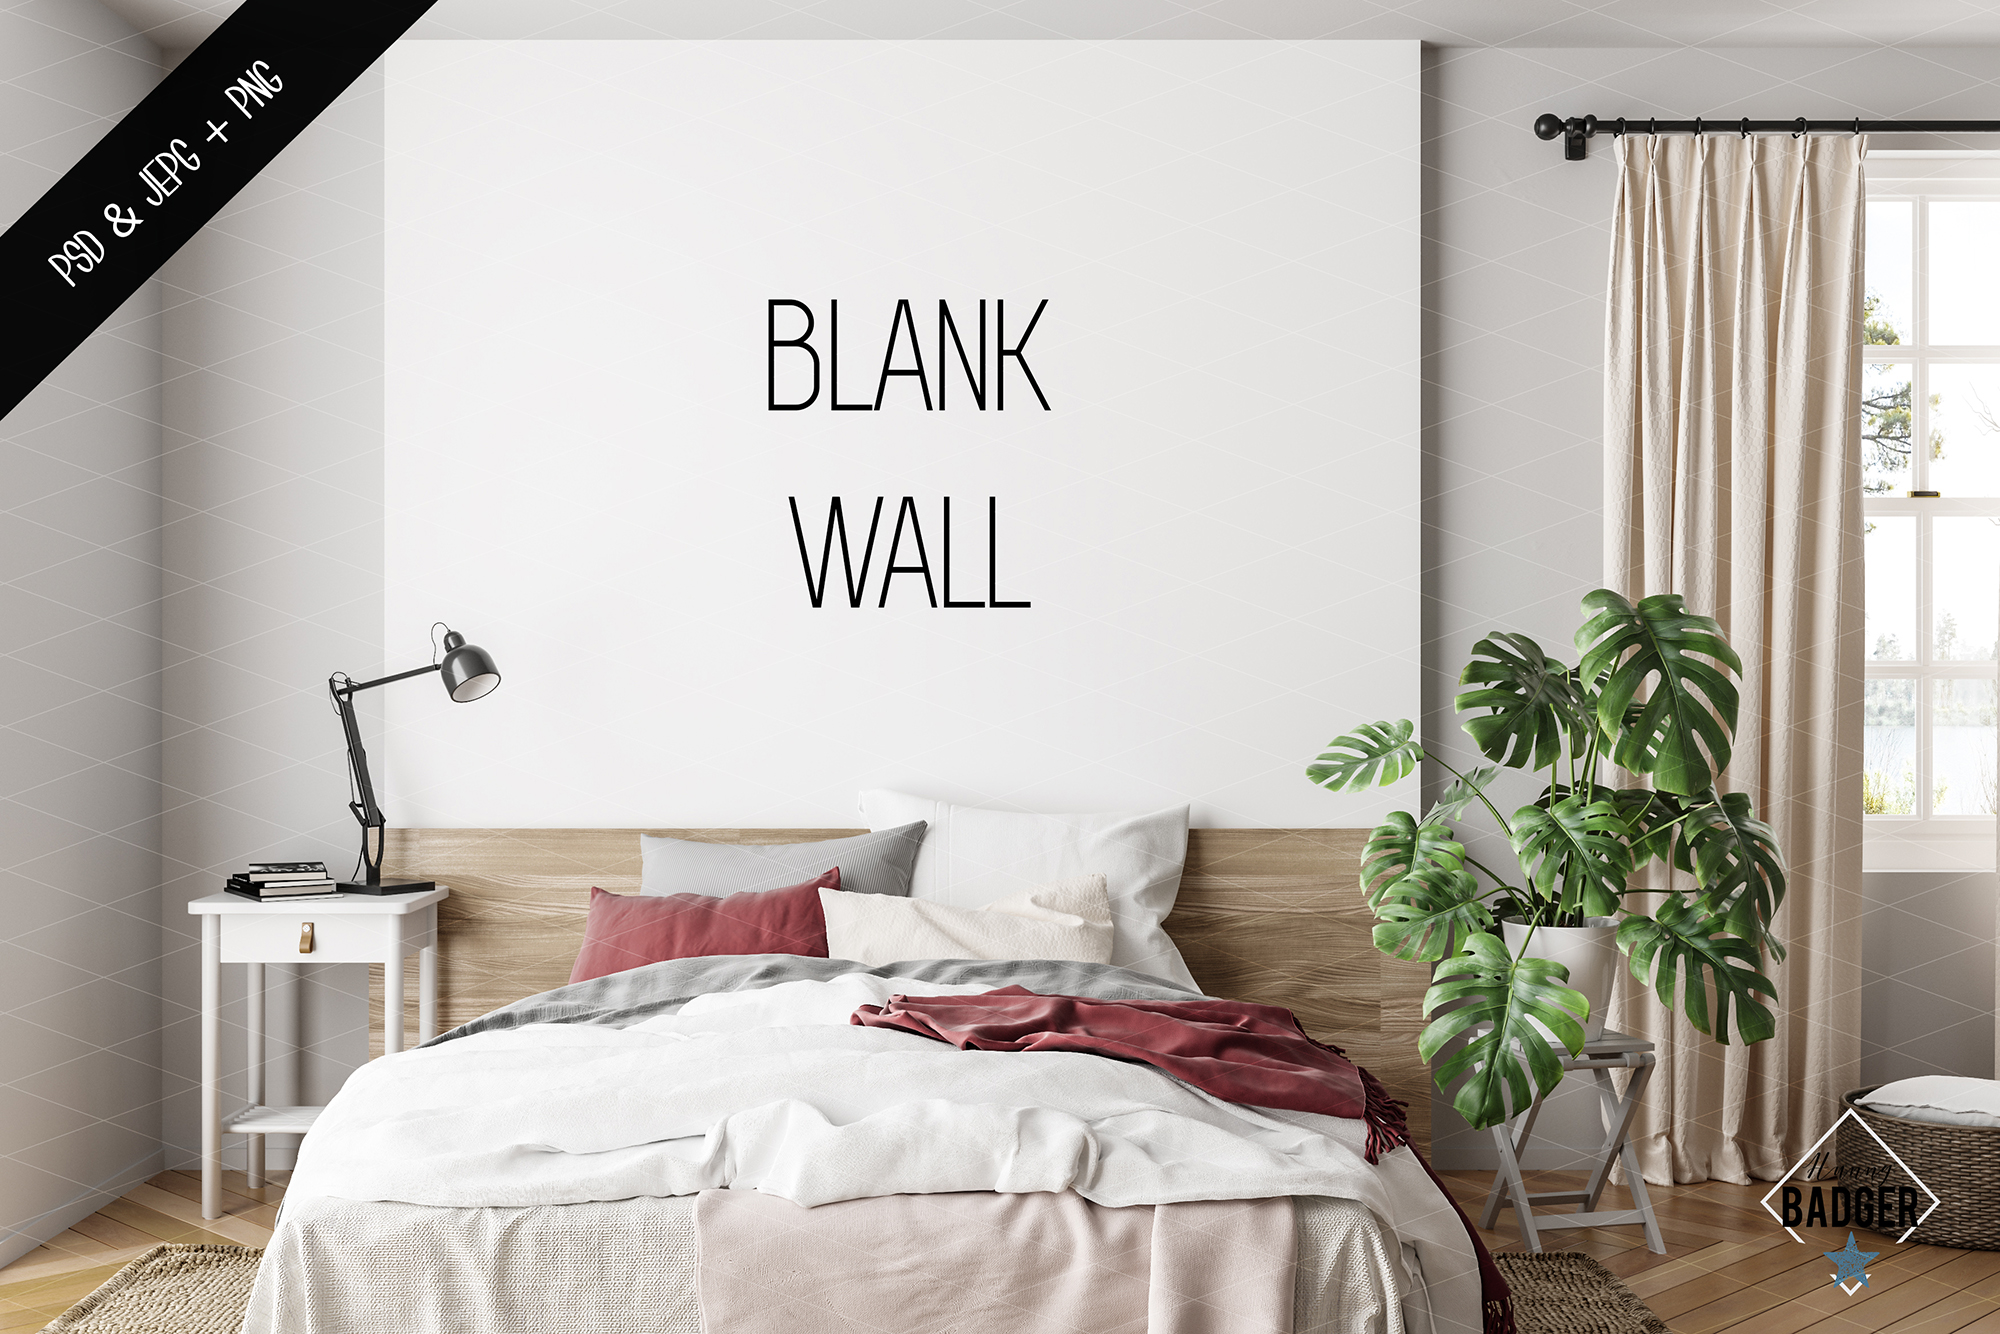 Wall mockup - Wallpaper mockup example image 6